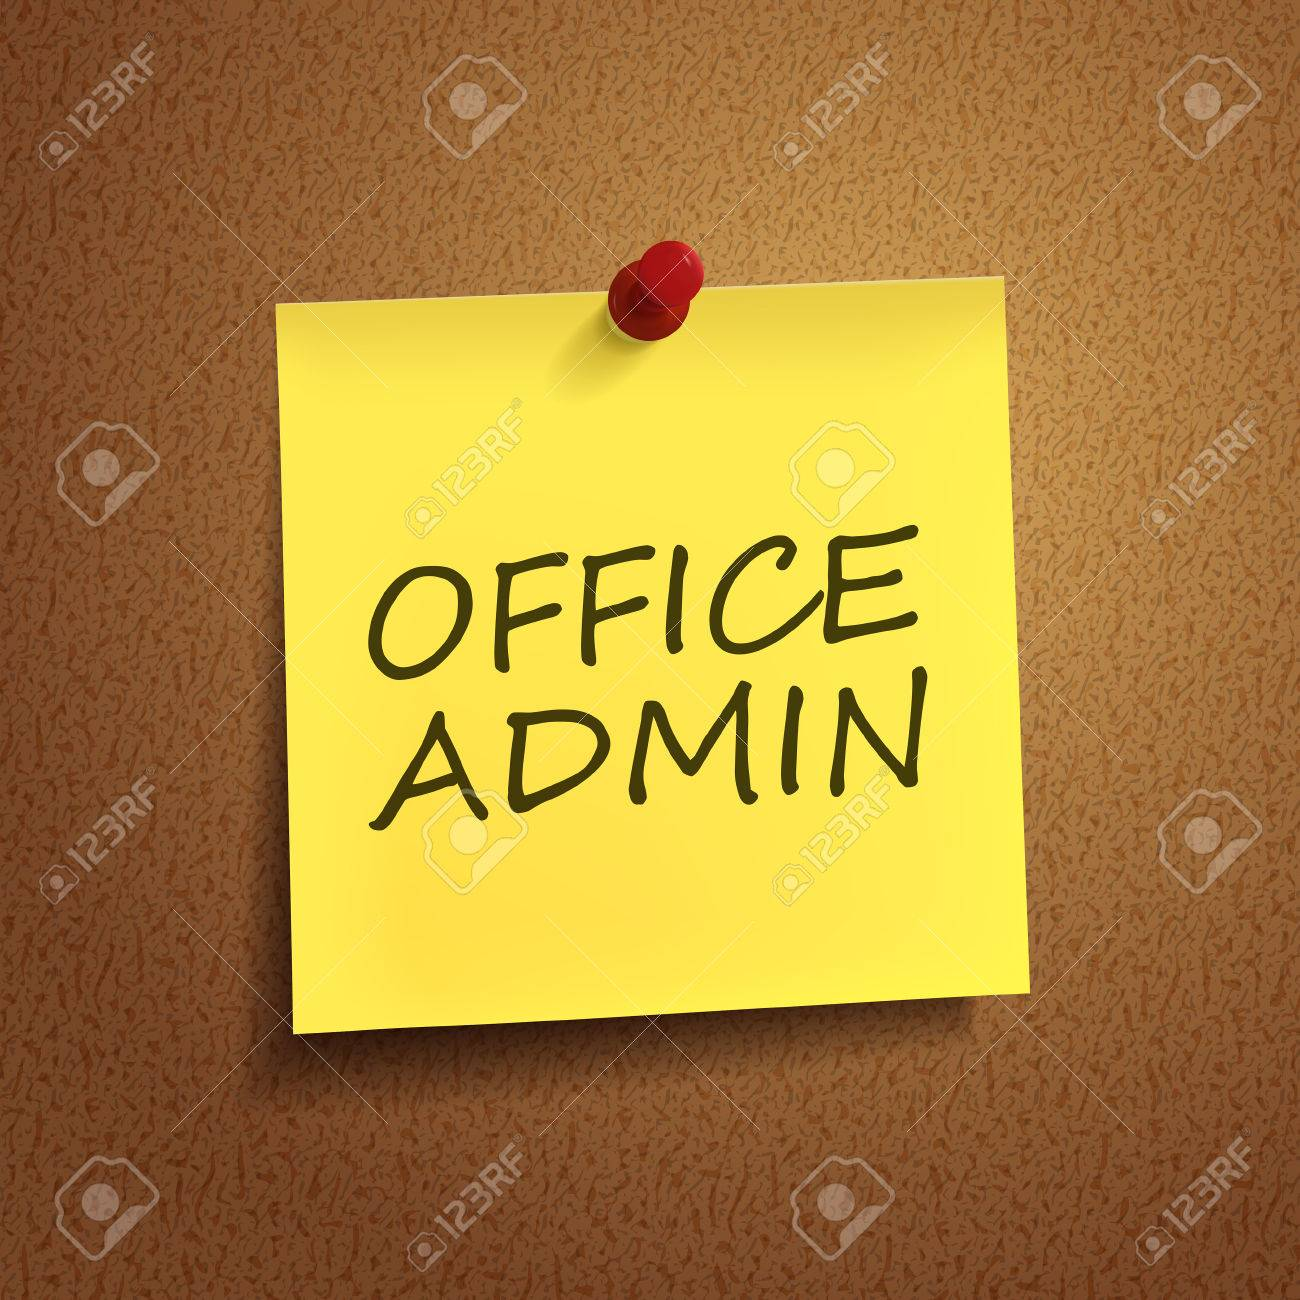 Image result for Office Admin